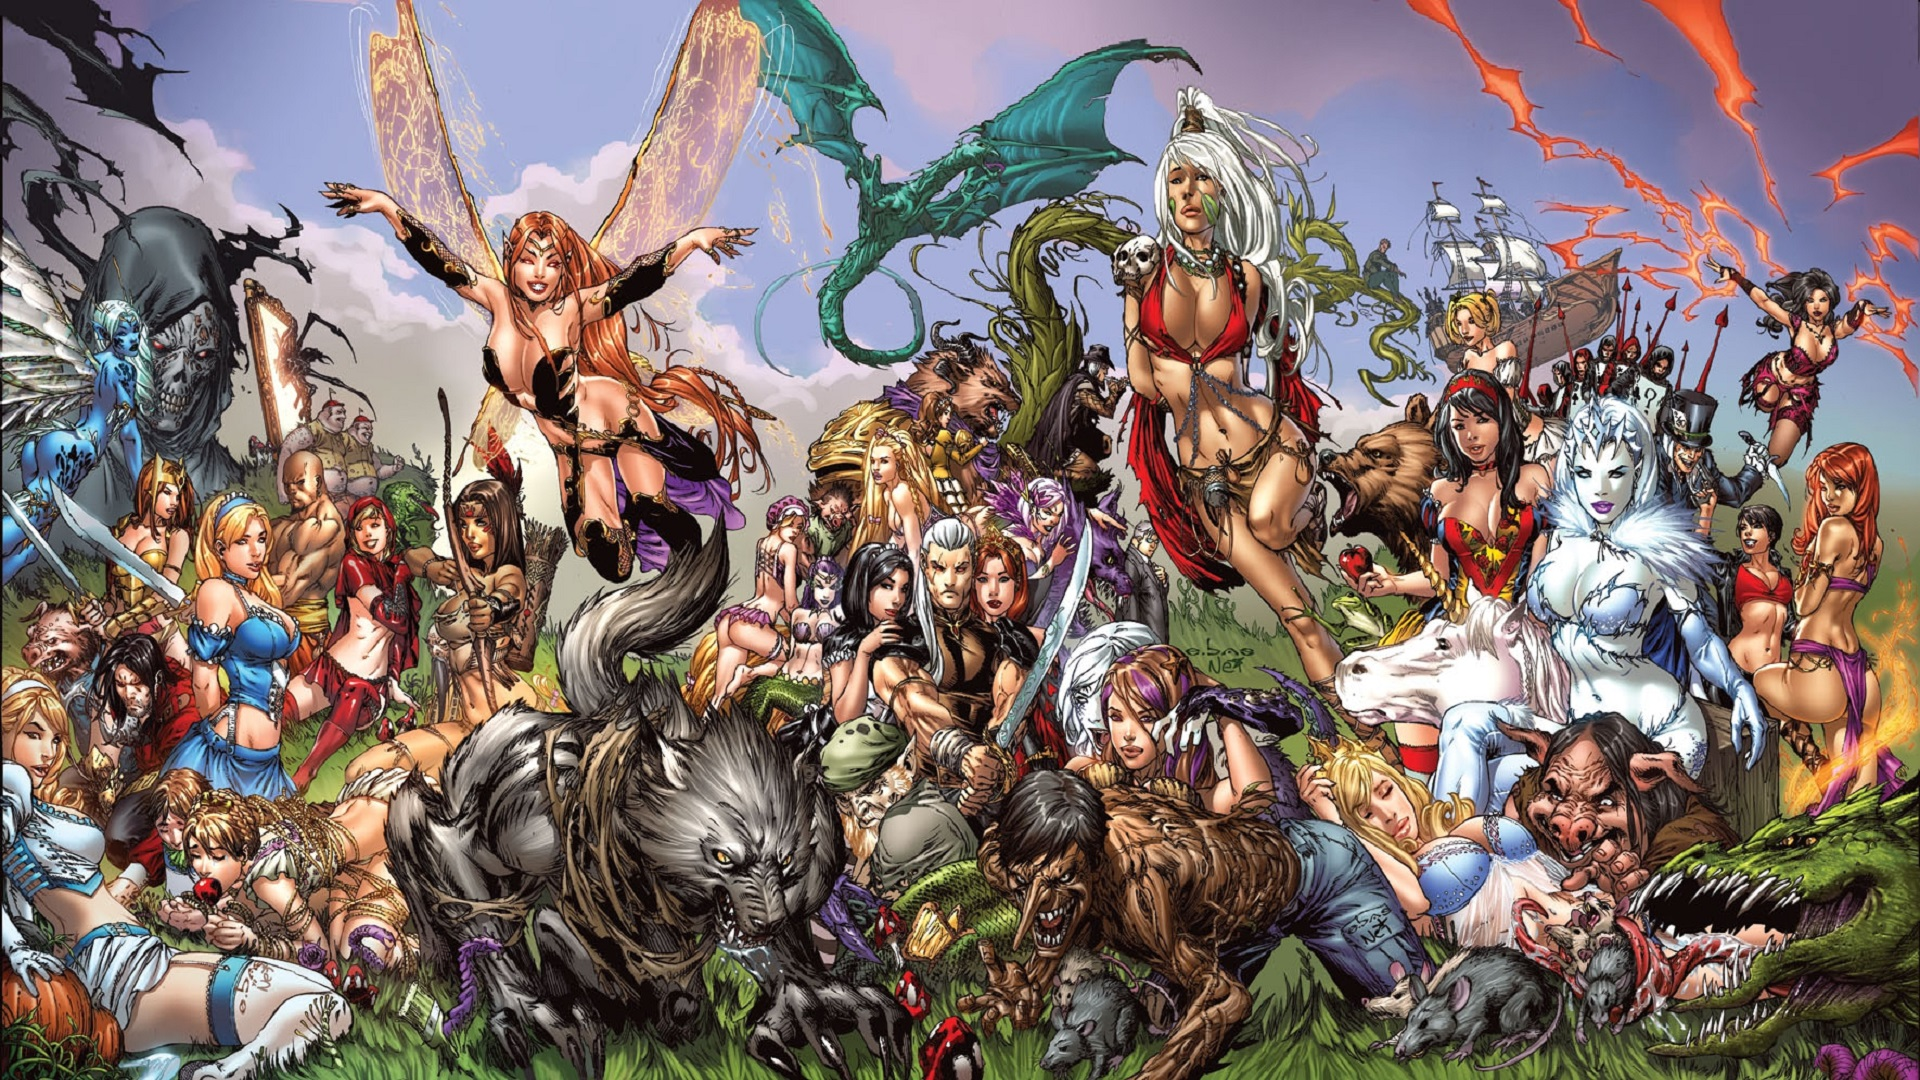 female grimm fairy tales wallpaper - photo #2